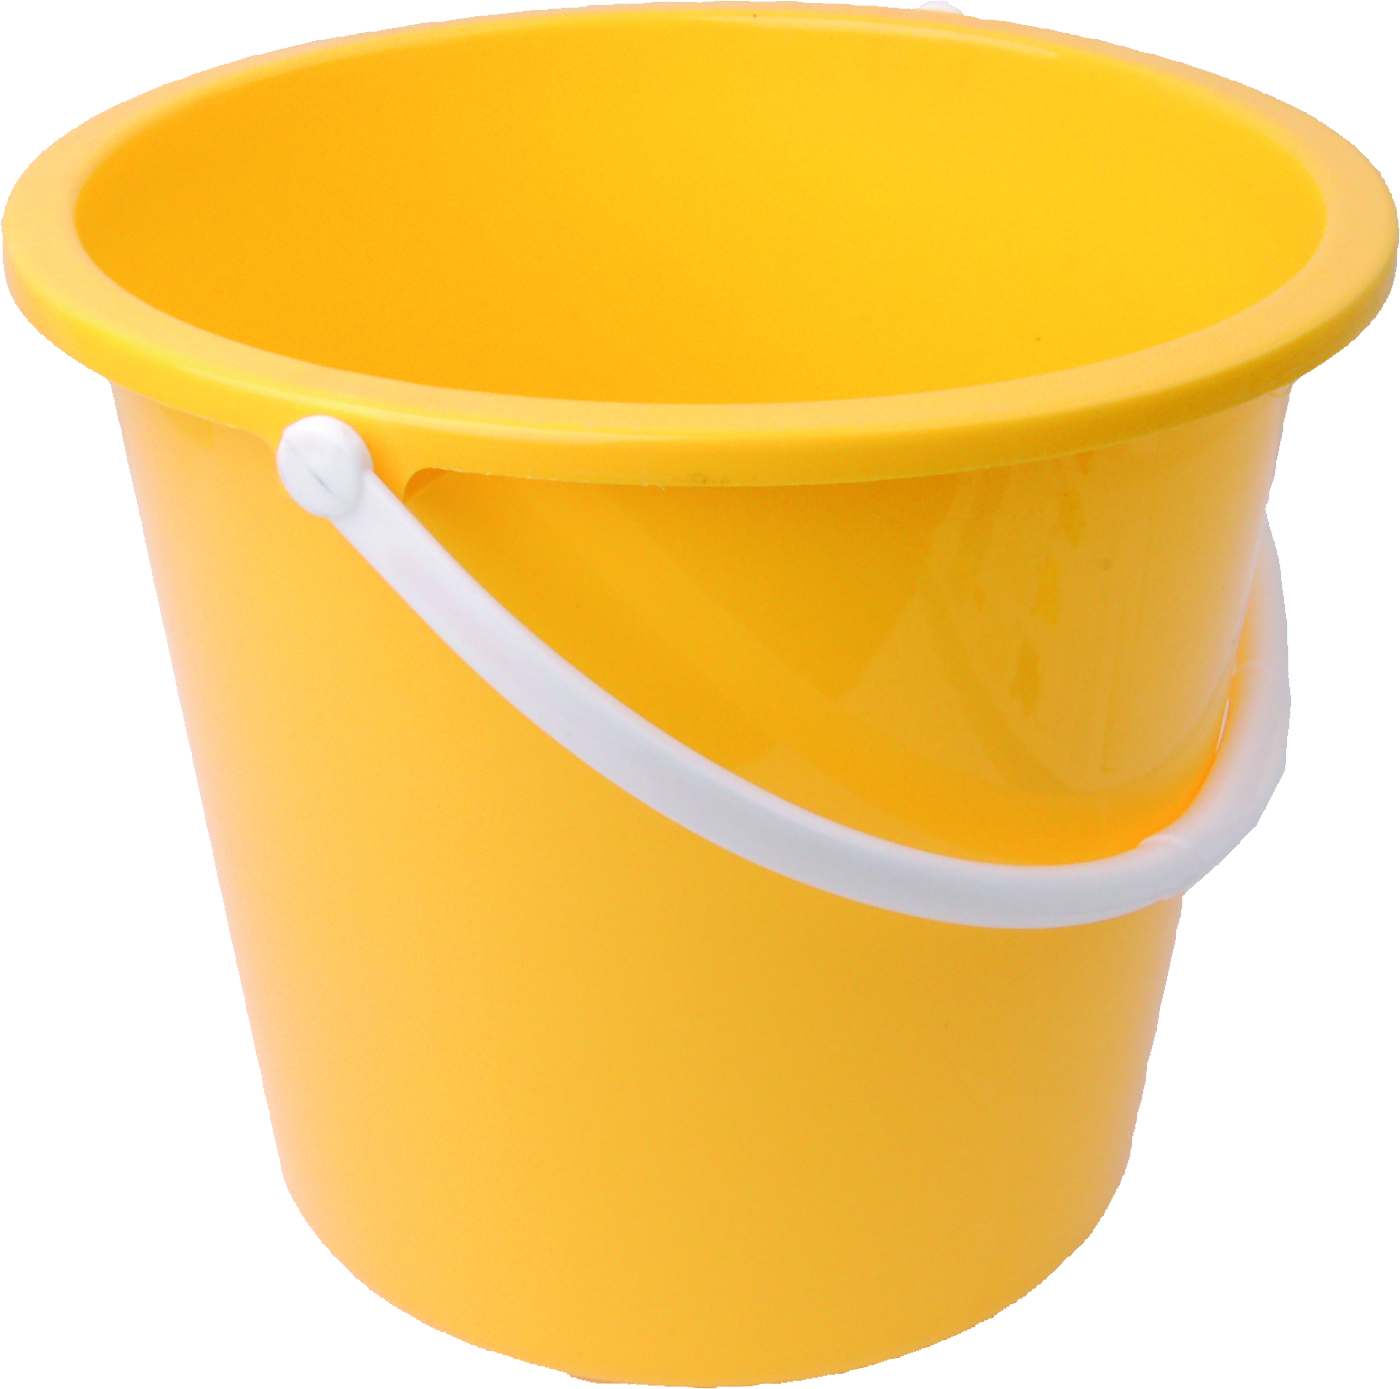 Bucket transparent plastic. Yellow png image purepng